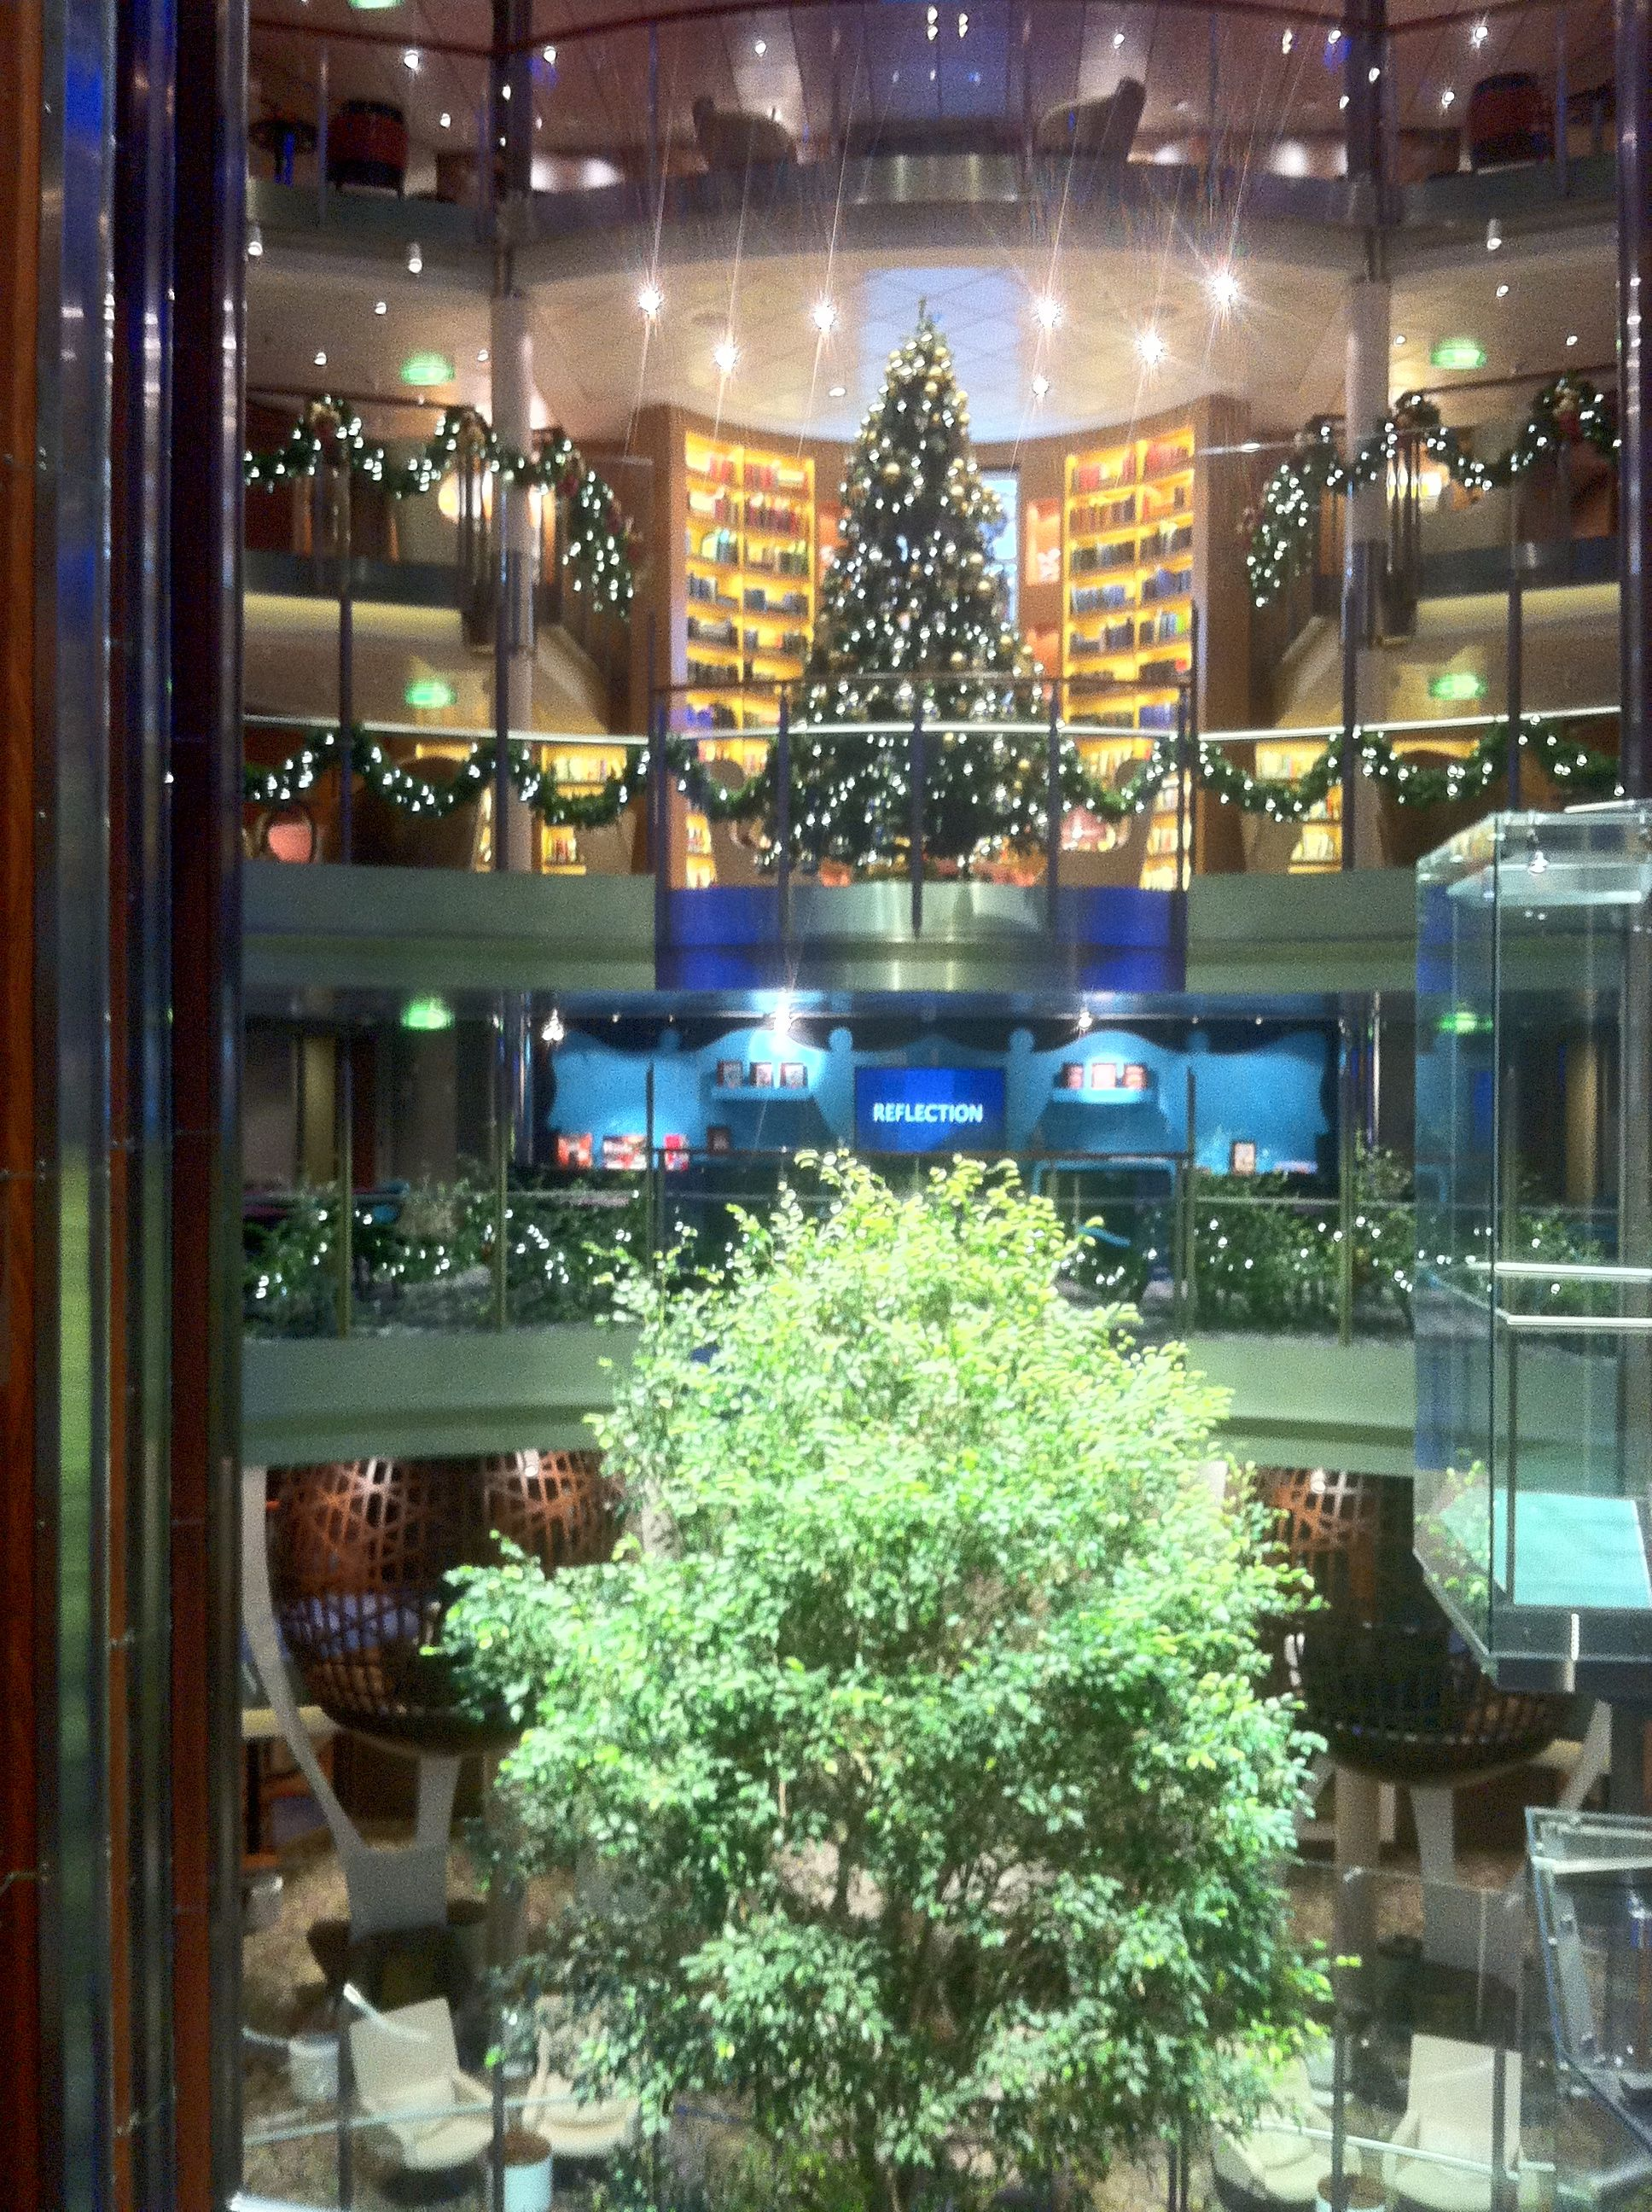 Holidays Are Here On @CelebrityCruise #Reflection